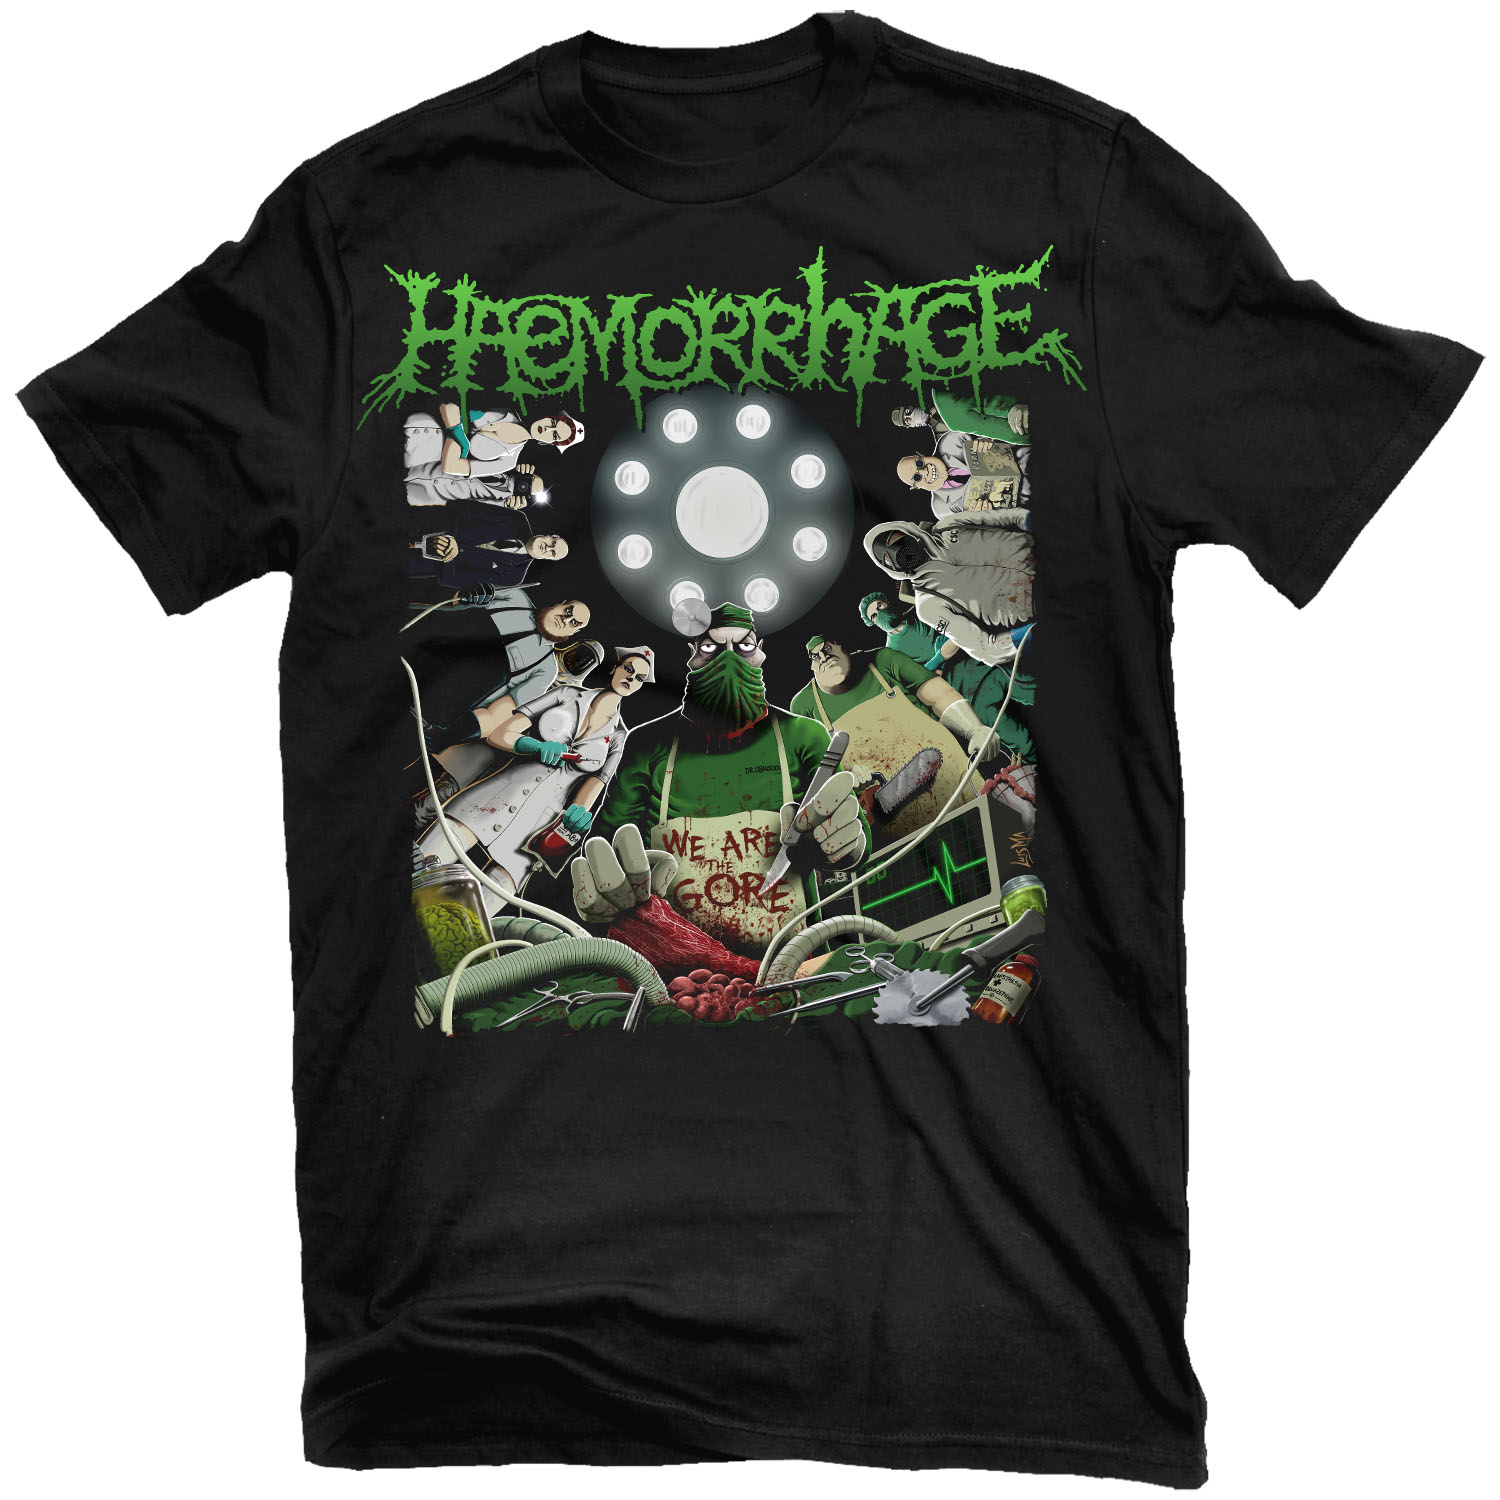 We Are The Gore T Shirt + CD Bundle